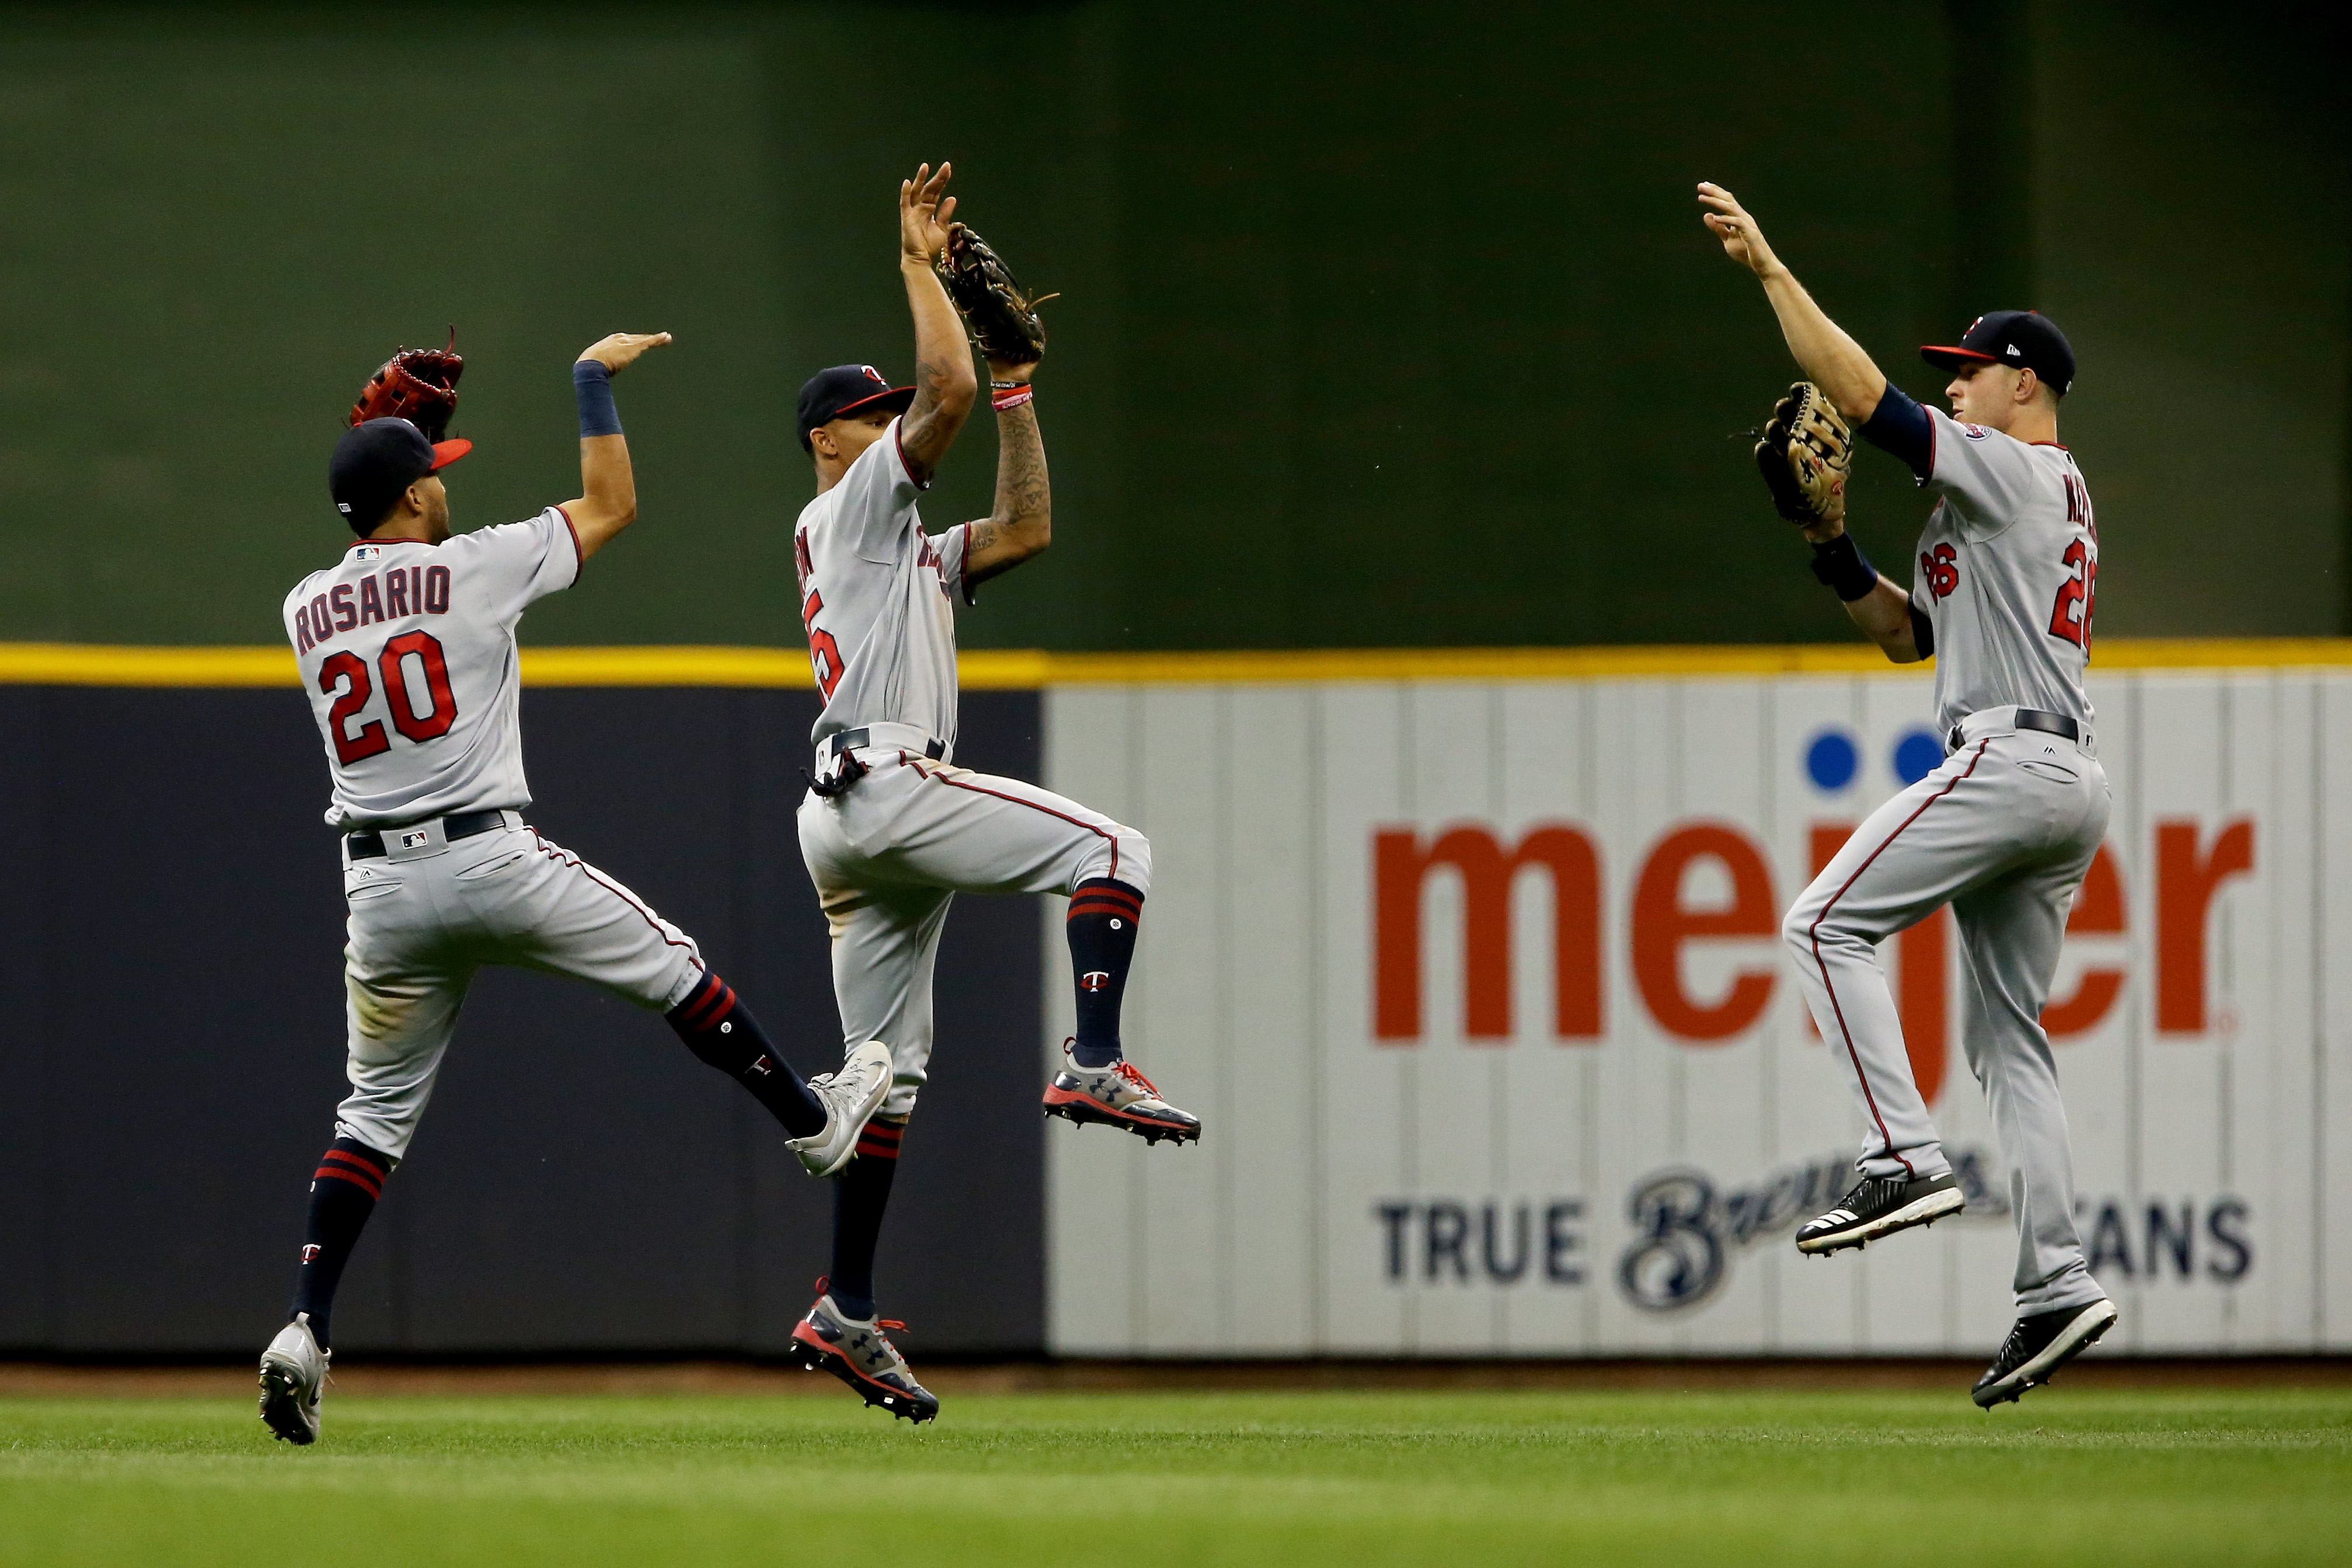 get discounted minnesota twins tickets through the dnr. Black Bedroom Furniture Sets. Home Design Ideas